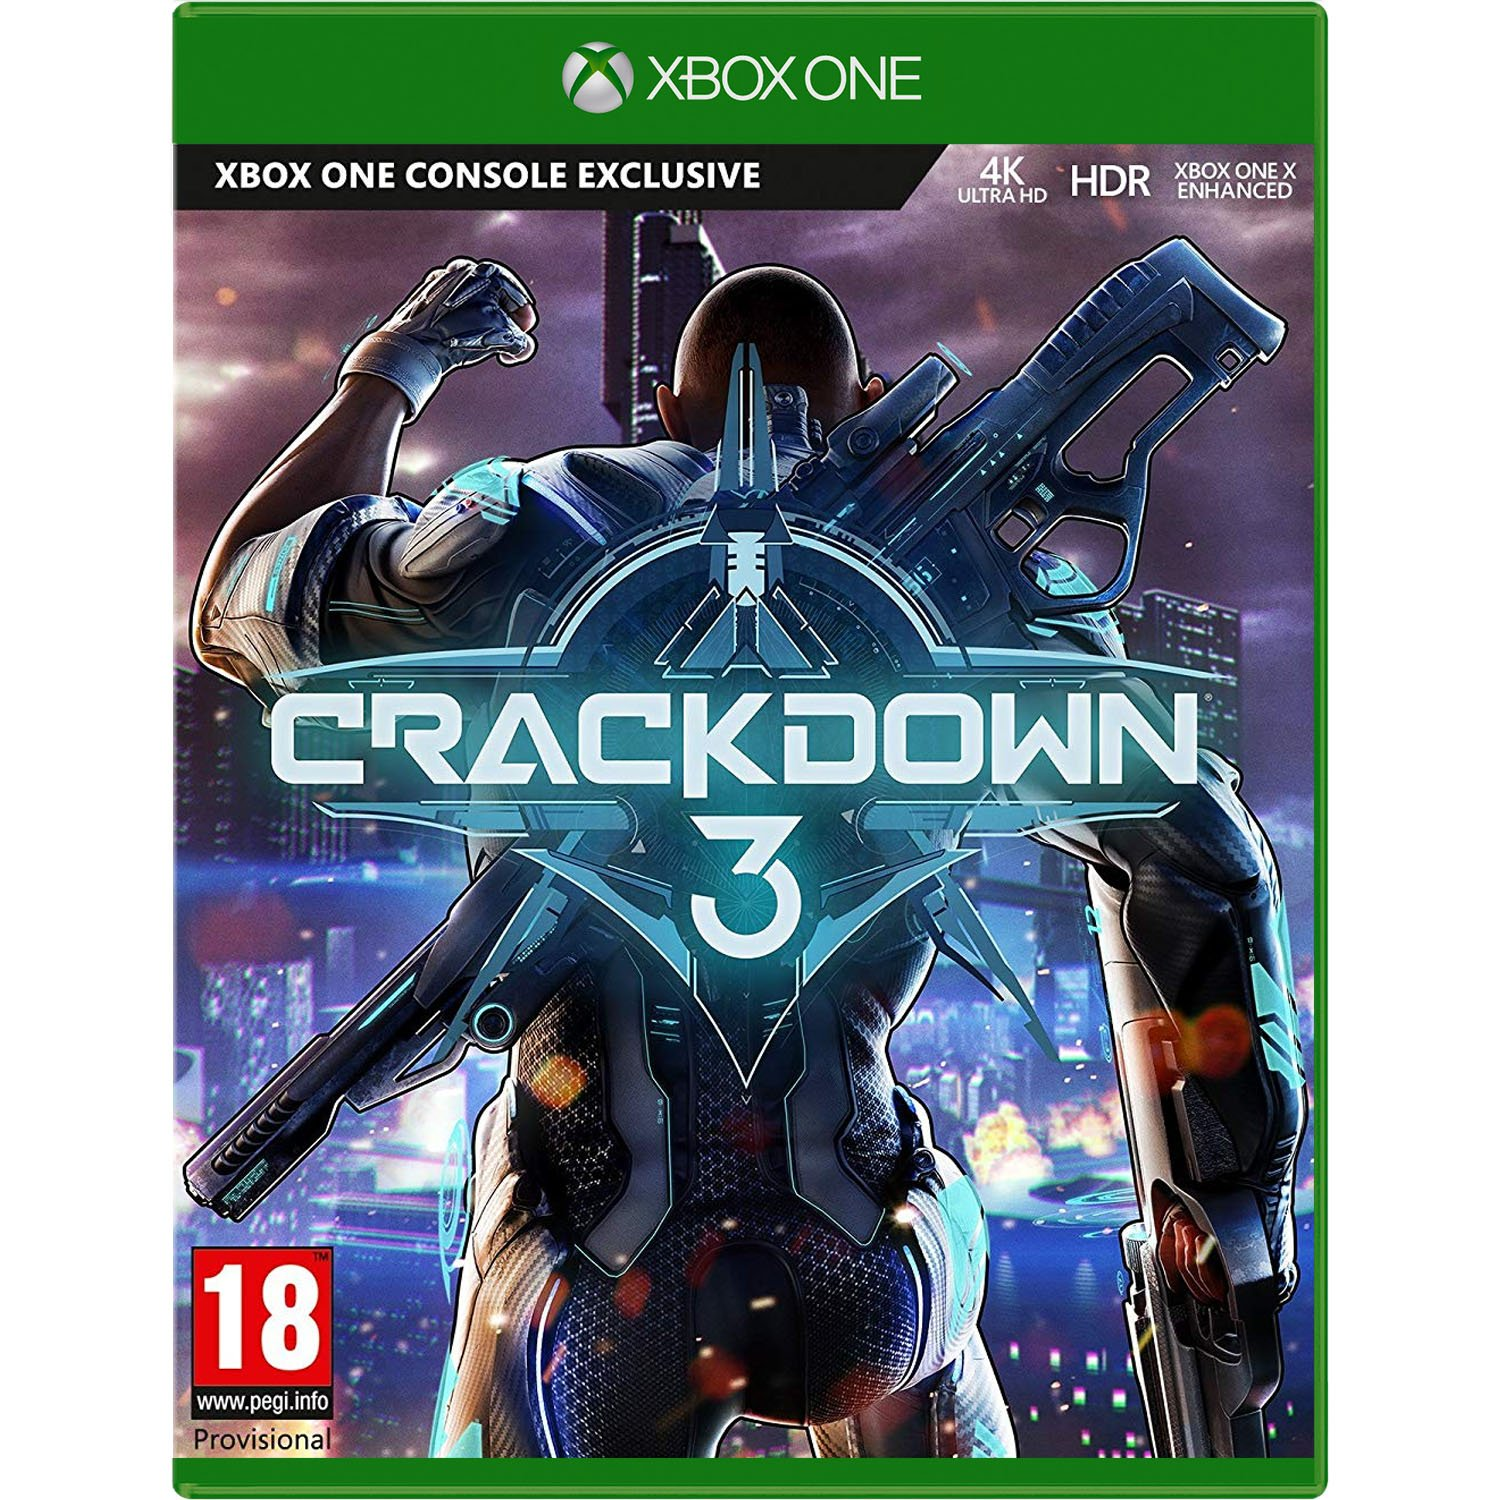 Crackdown 3 (UK)